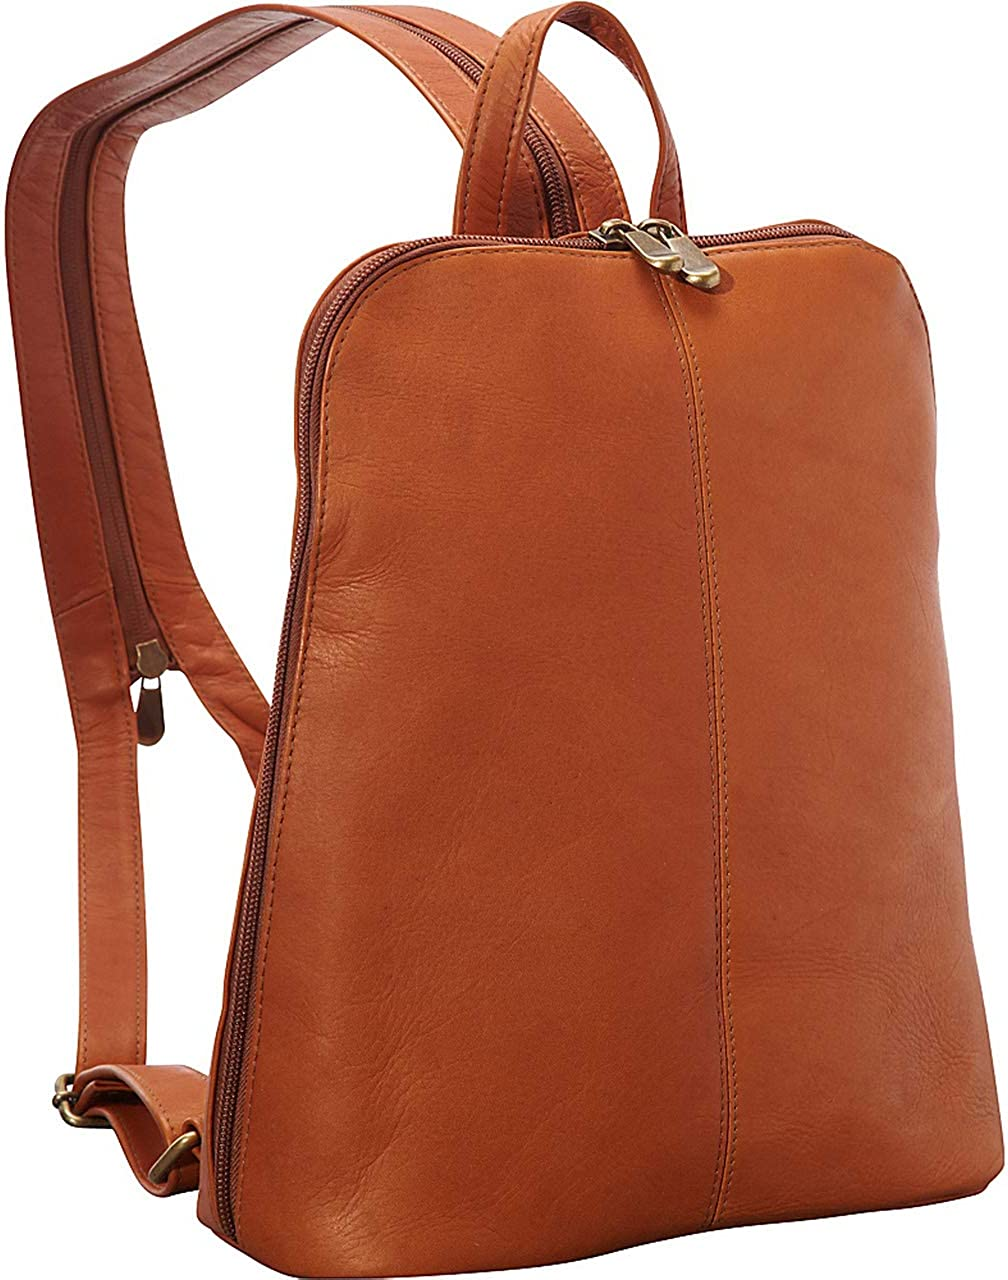 Le Donne Leather Womens Slim Sling Backpack 5 Colors Colombian Leather NEW